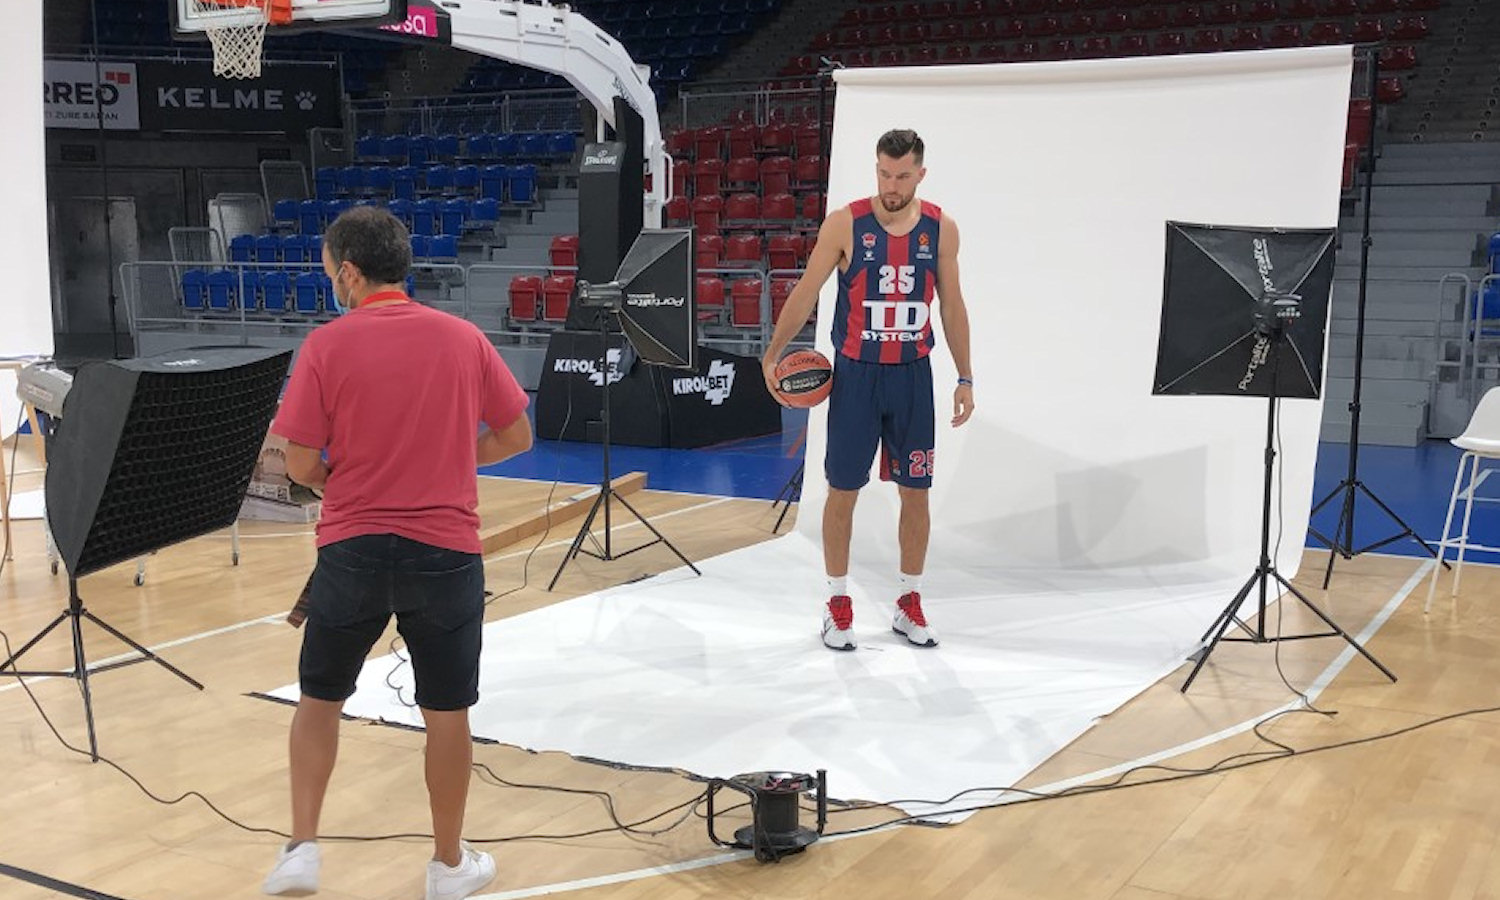 Alec Peters - TD Systems Baskonia Vitoria-Gasteiz Media Day 2020 - EB20